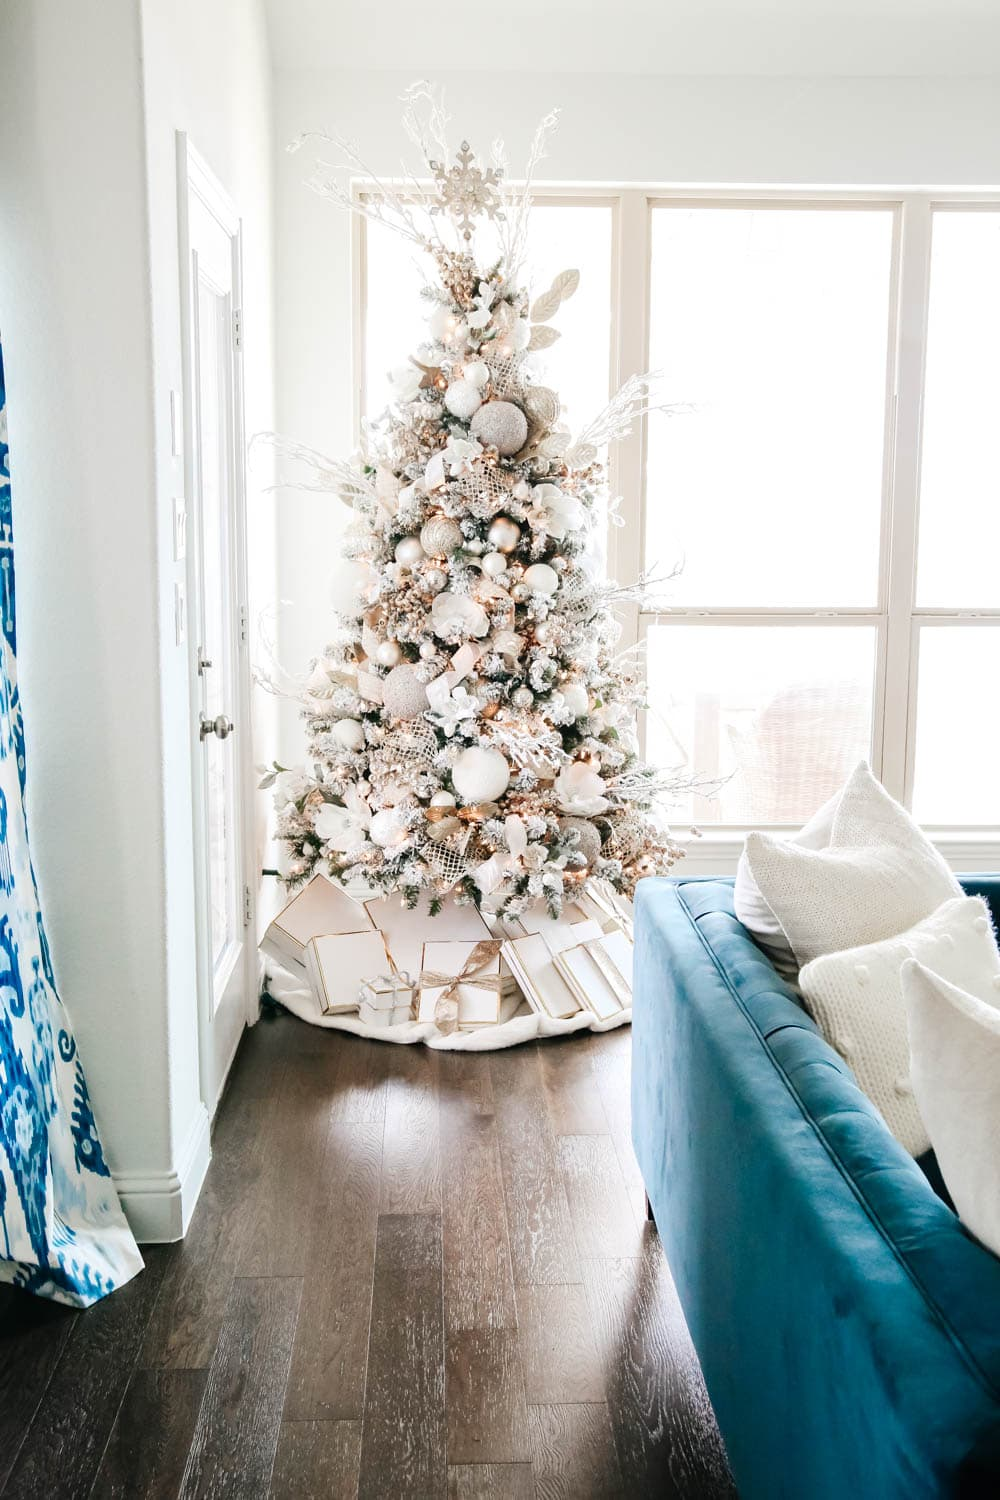 Neutral Christmas tree, winter white Christmas decor ideas. #ABlissfulNest #Christmasdecor #holidaydecorating